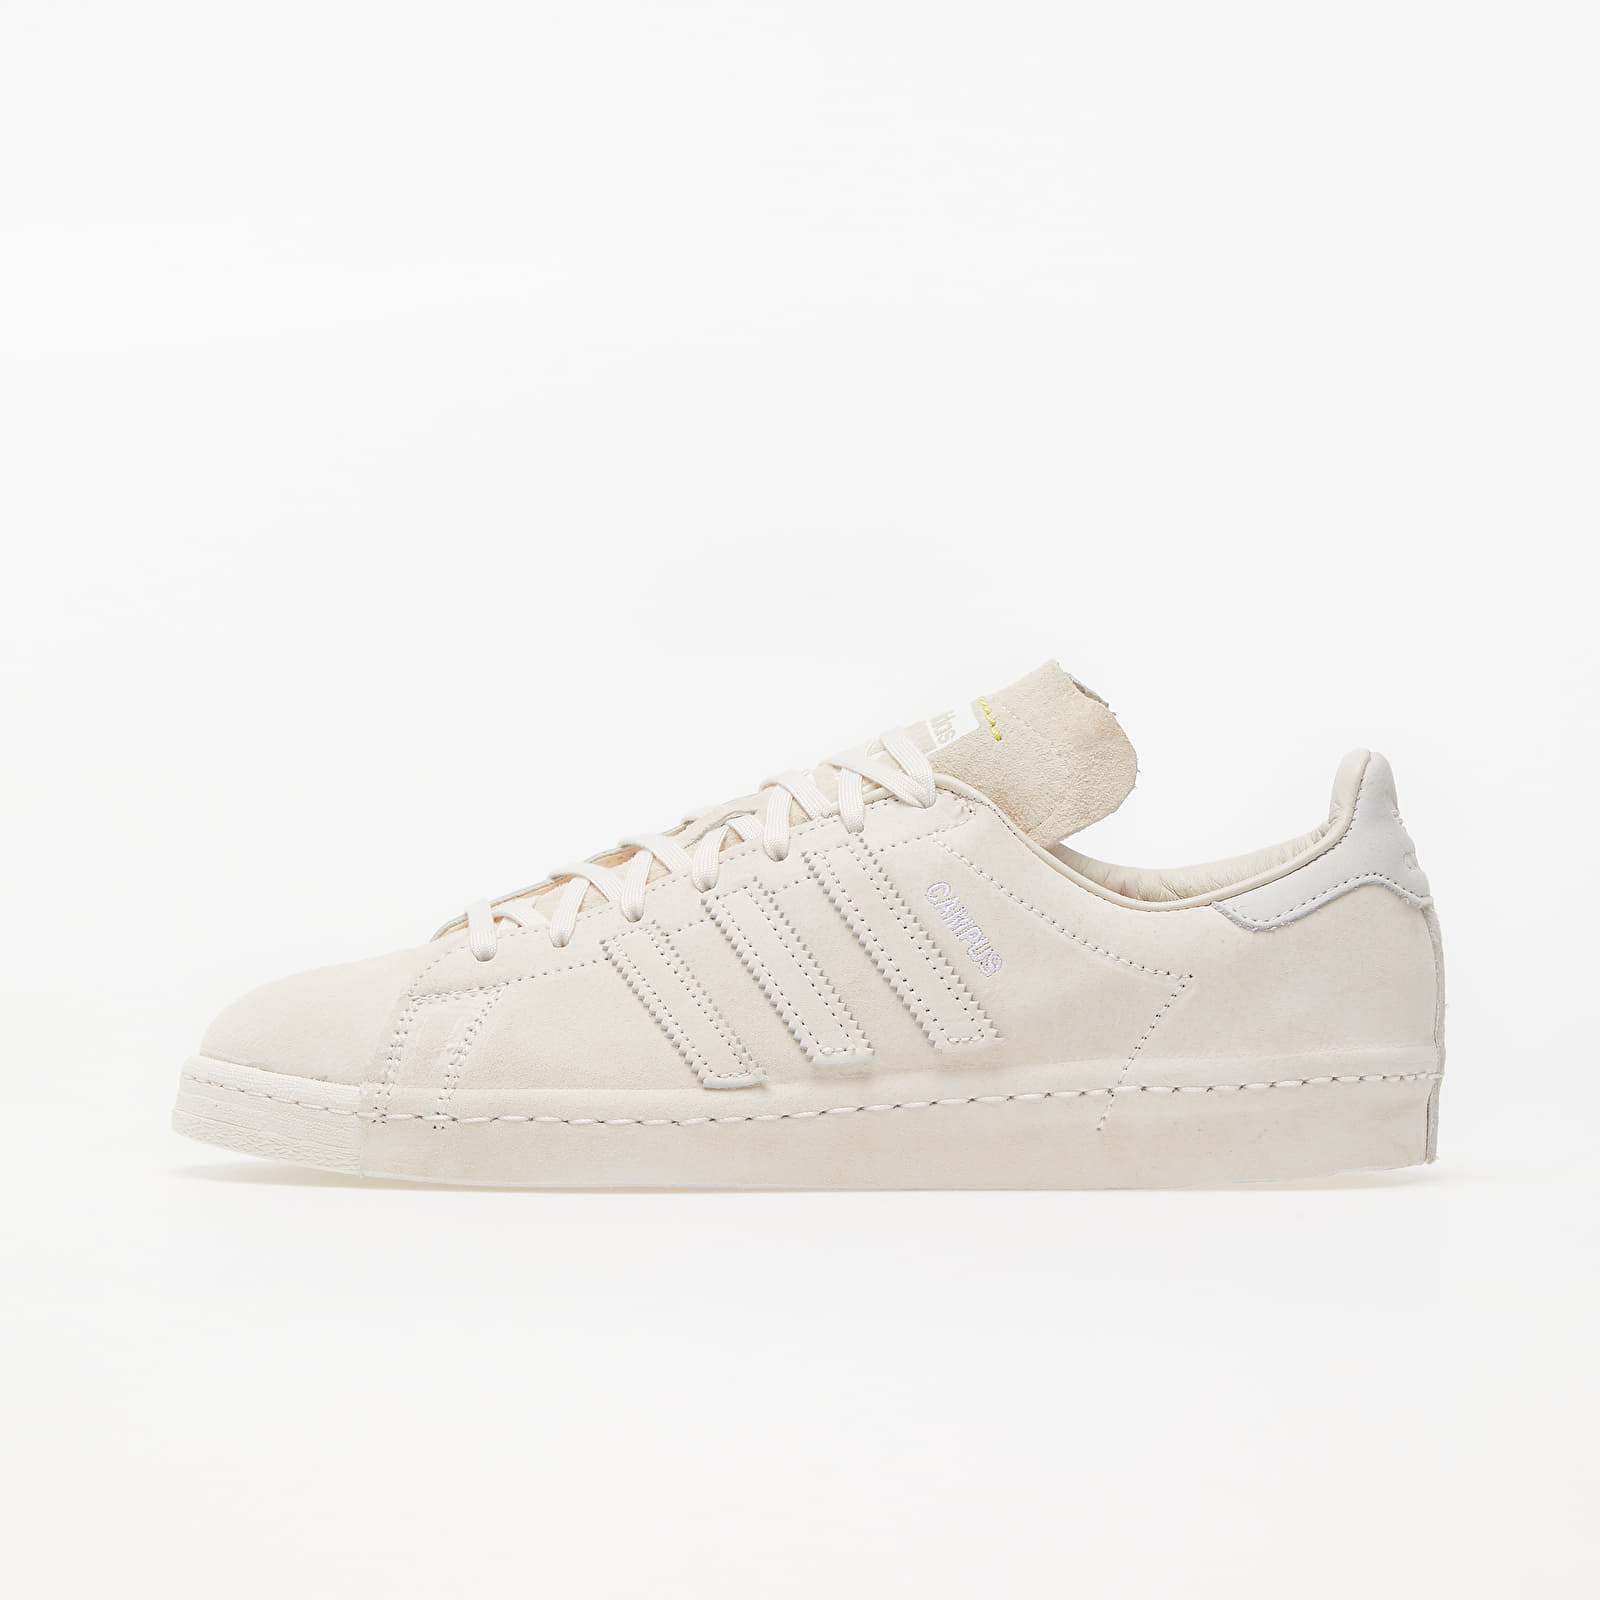 adidas Consortium x Recouture Campus 80S SH Chalk White/ Dark Blue/ Core Black EUR 42